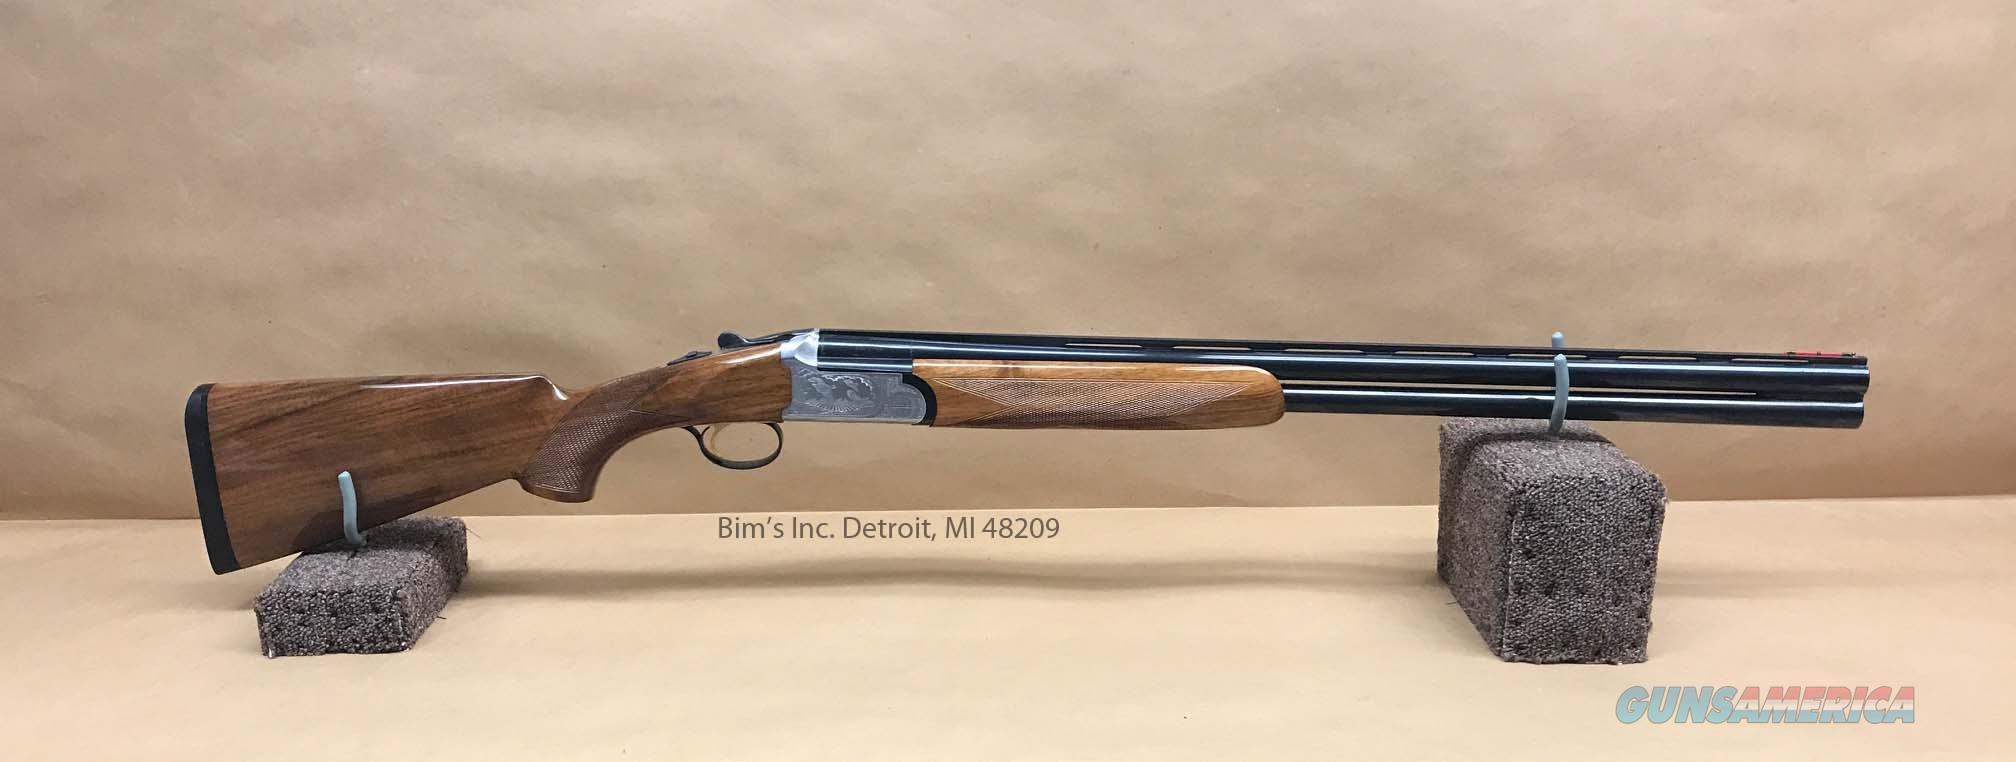 Sigarms SA3 Over Under 12 Gauge Stainless Engraved Shotgun  Guns > Shotguns > Sig - Sauer/Sigarms Shotguns